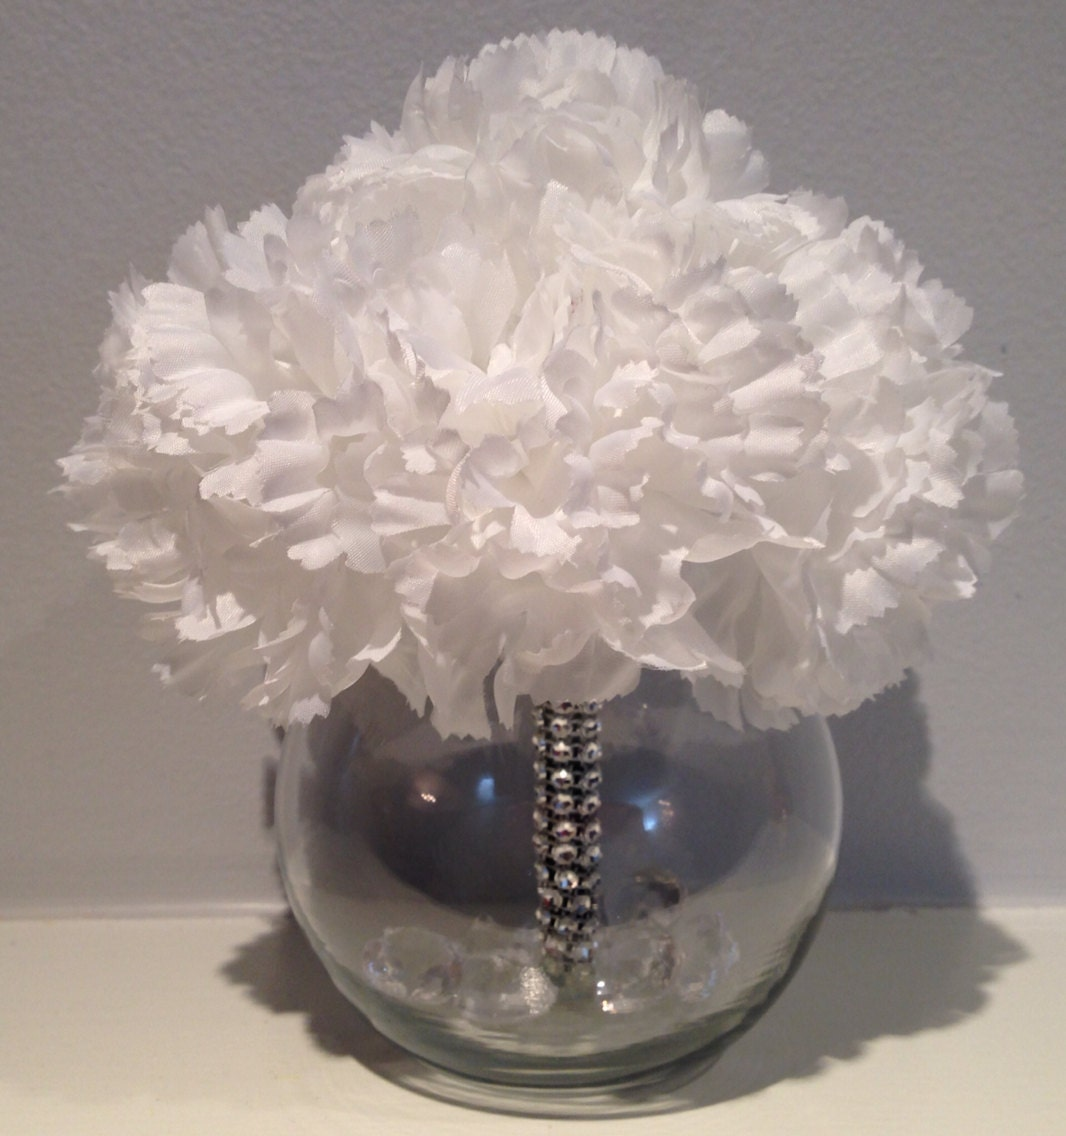 Bridal shower centerpiece first communion centerpiece Wedding shower centerpieces